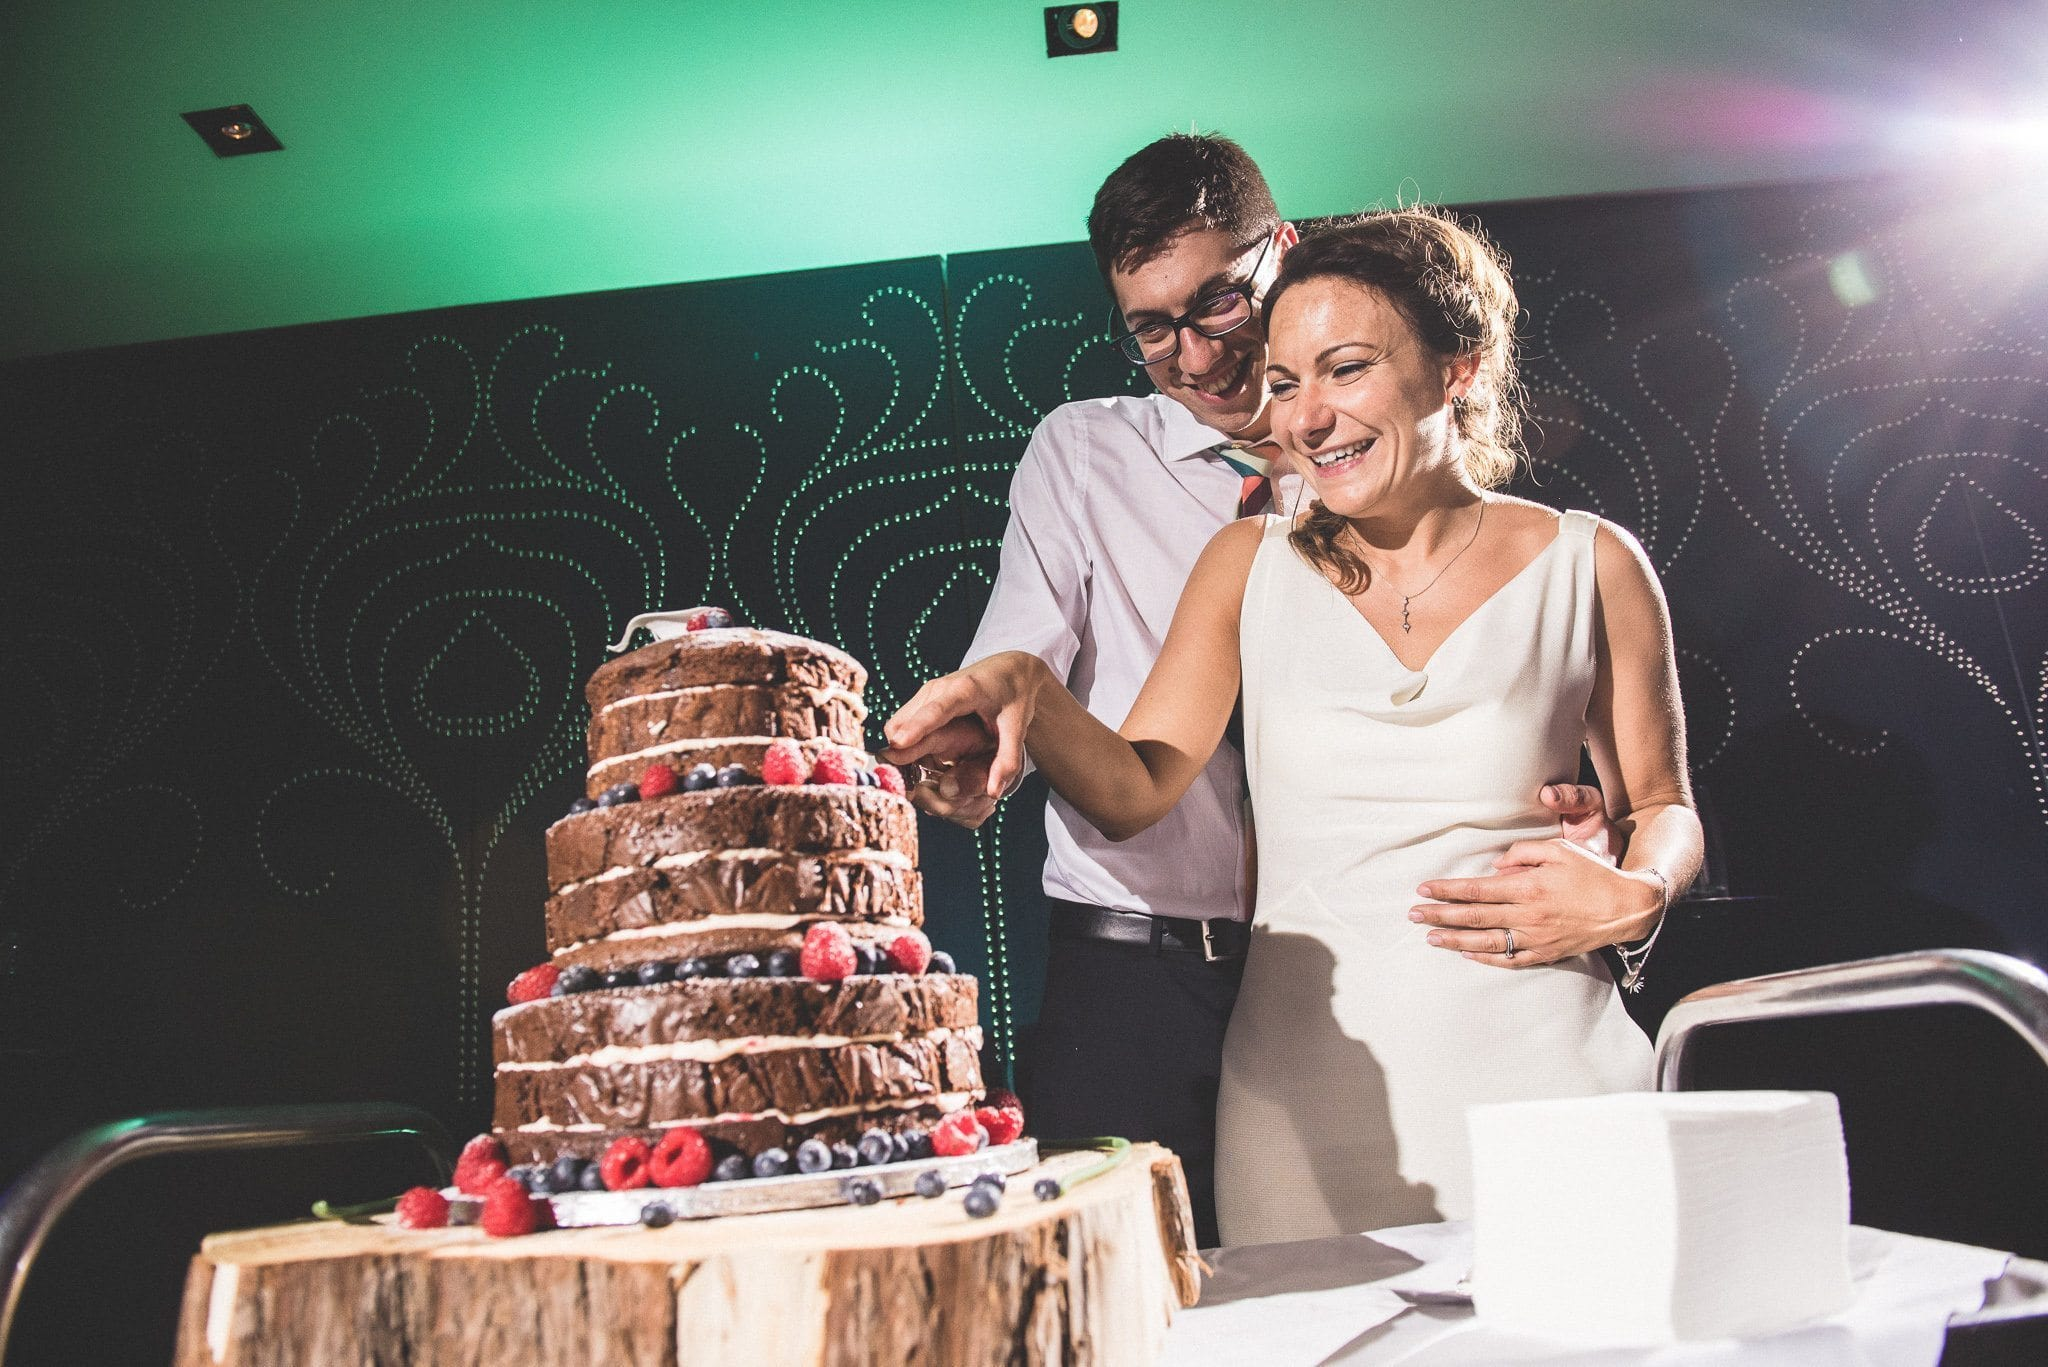 The couple cut their chocolate wedding cake